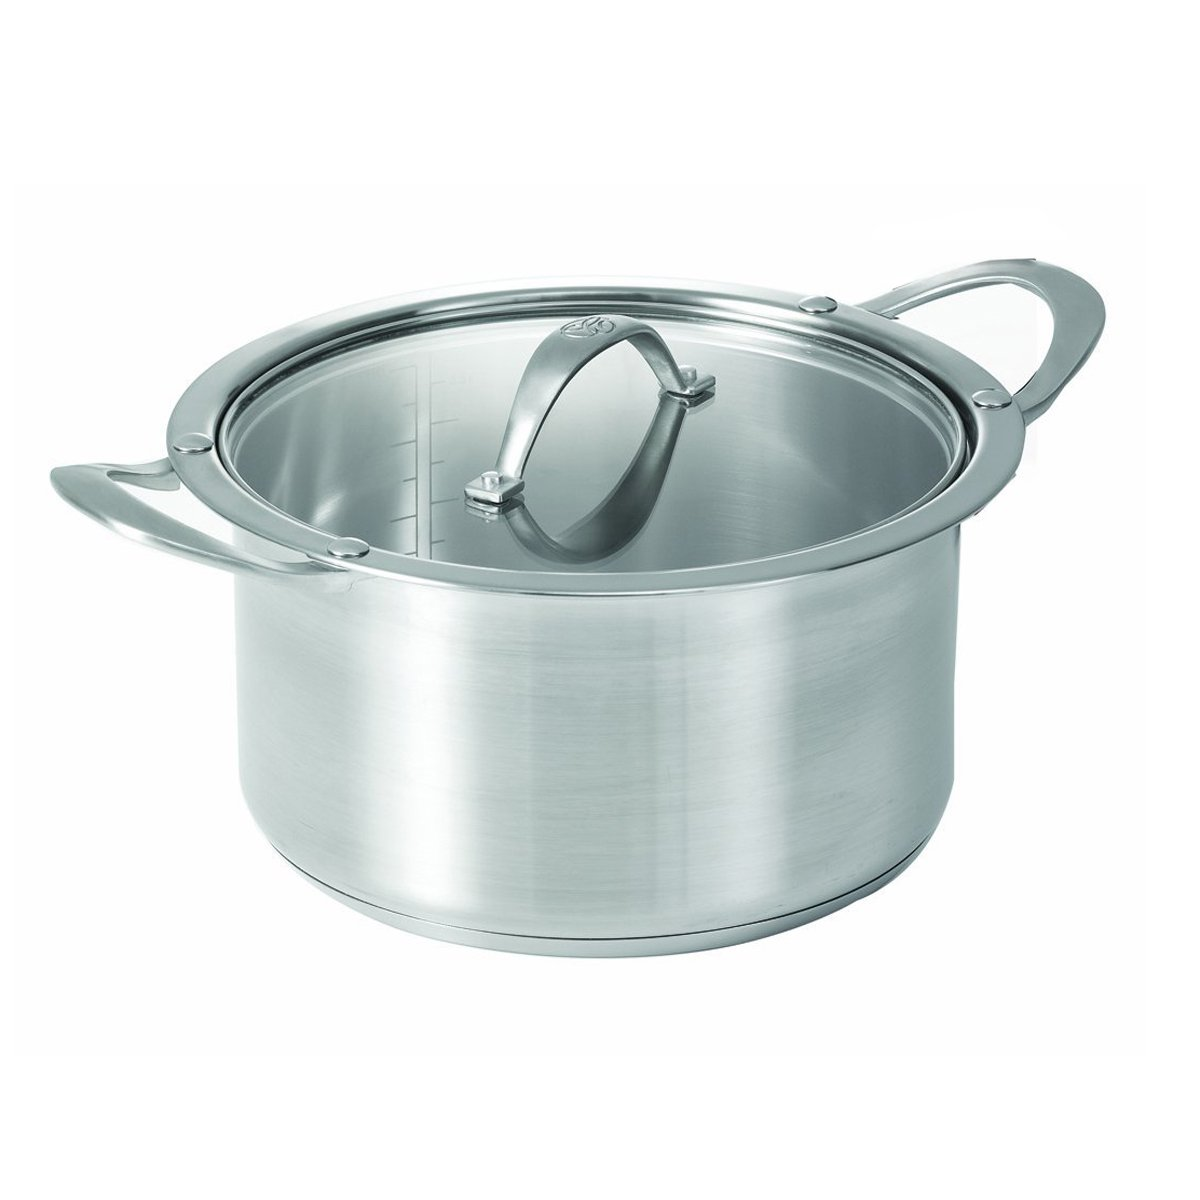 CAT CORA by Starfrit Stainless Steel Cook N Serve Casserole, 2-1/2-Quart